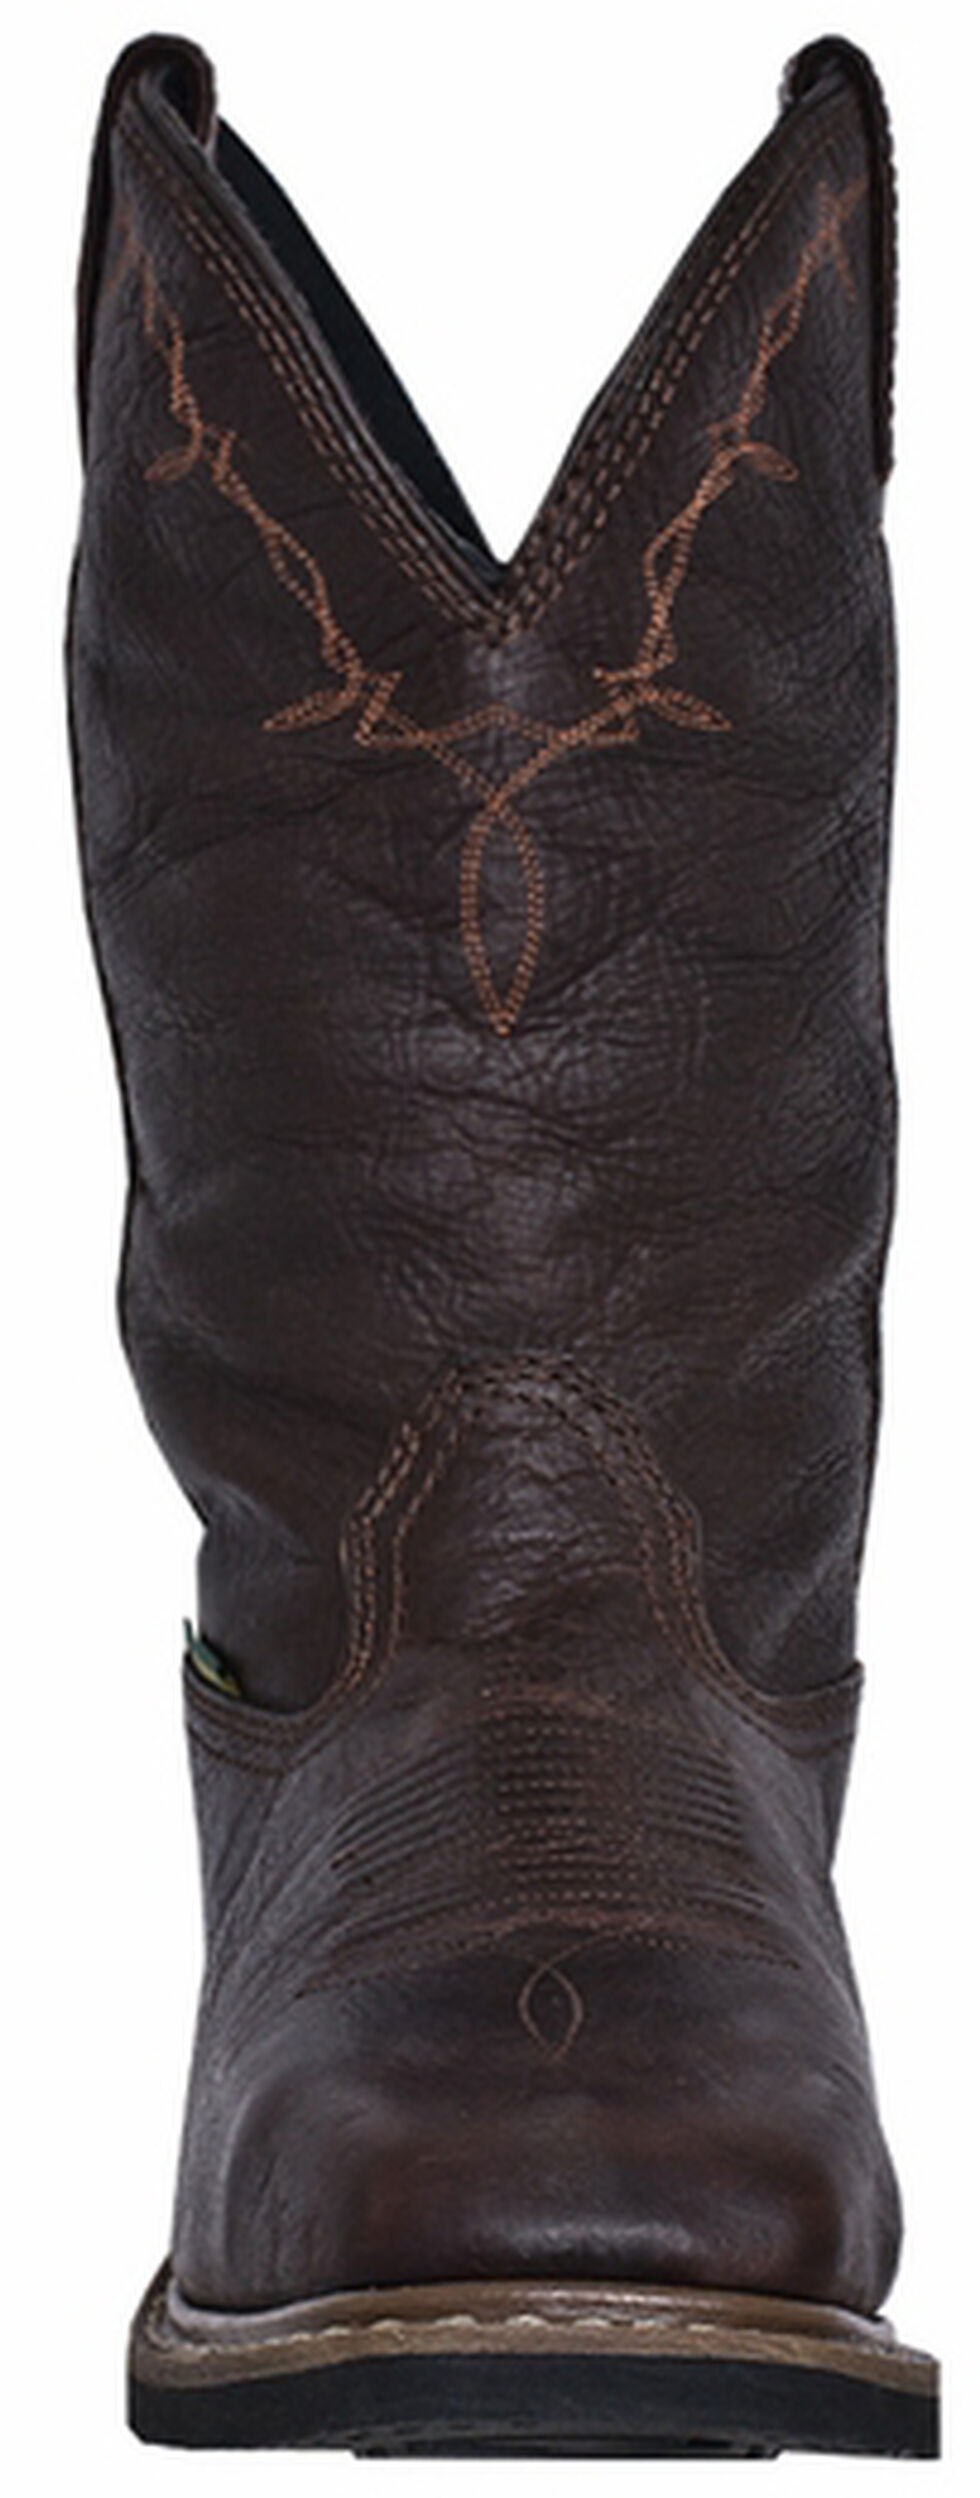 John Deere Men's Leather Western Work Boots - Steel Toe, Copper, hi-res